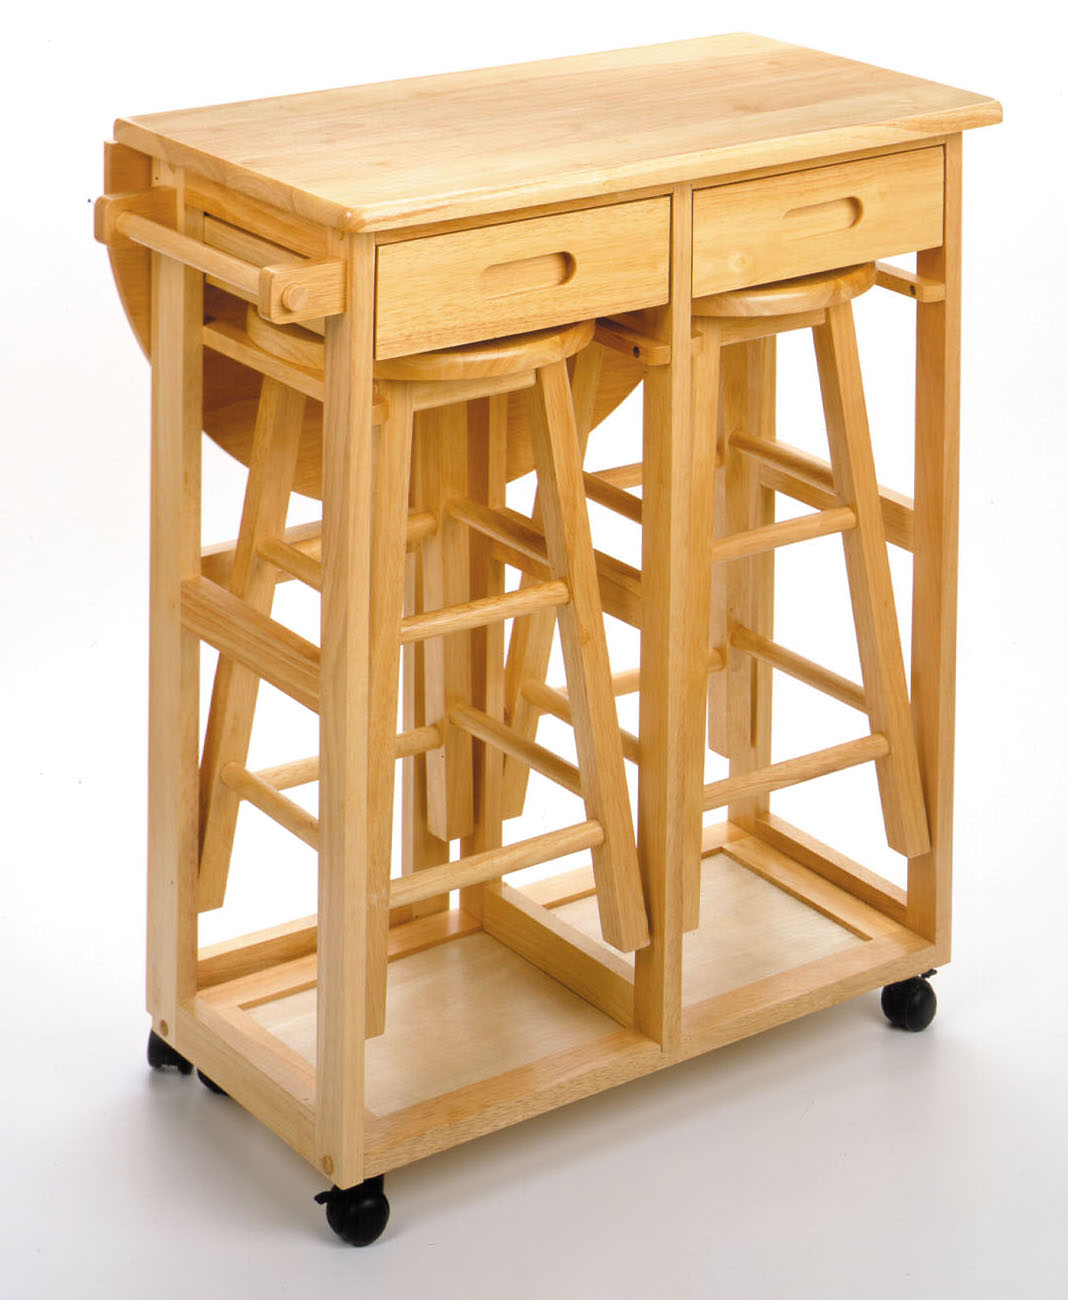 Winsome 89332 Beech Beechwood TABLE DROP LEAF 2 RD STOOL 2 DRAWERS